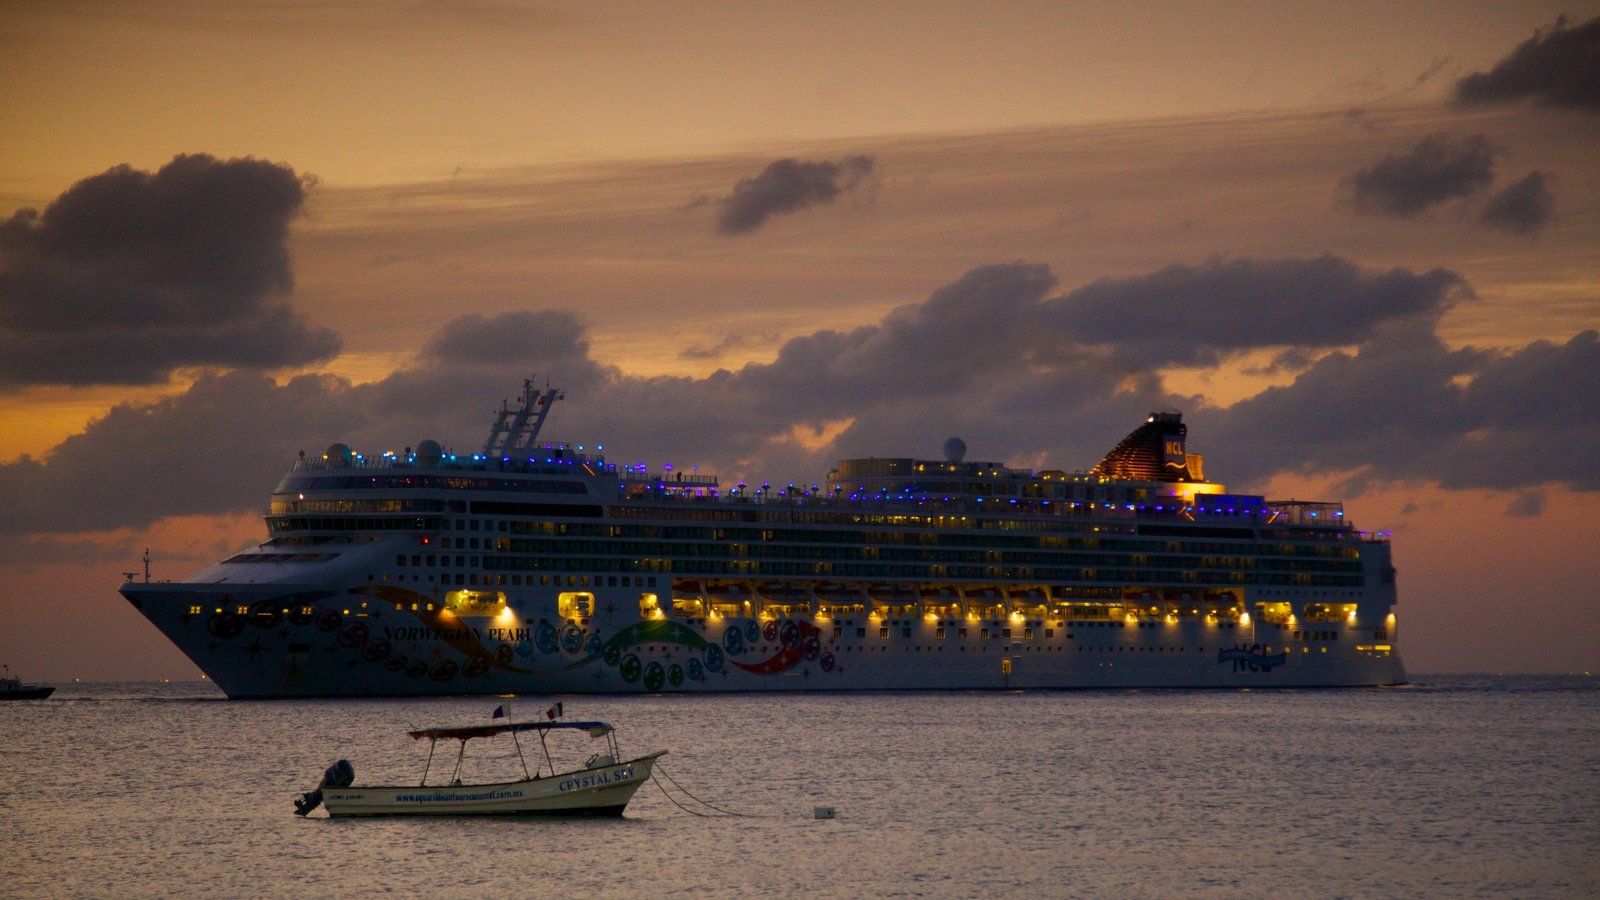 Cozumel showing a sunset, a bay or harbour and cruising